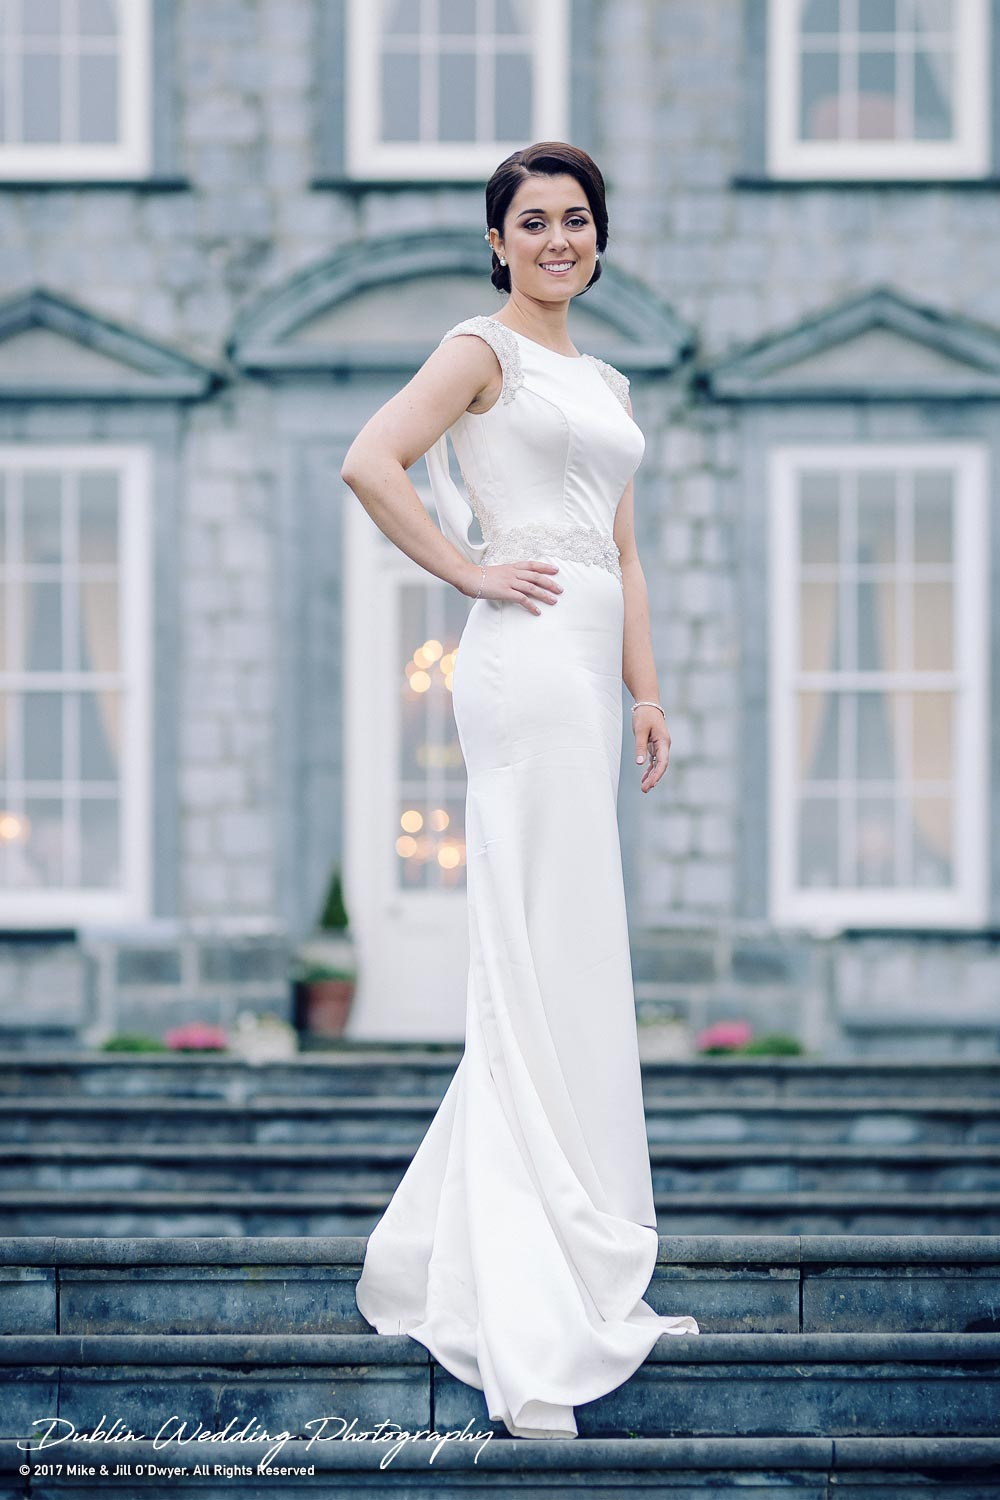 Castle Durrow Wedding Photographer The Bride On the Steps